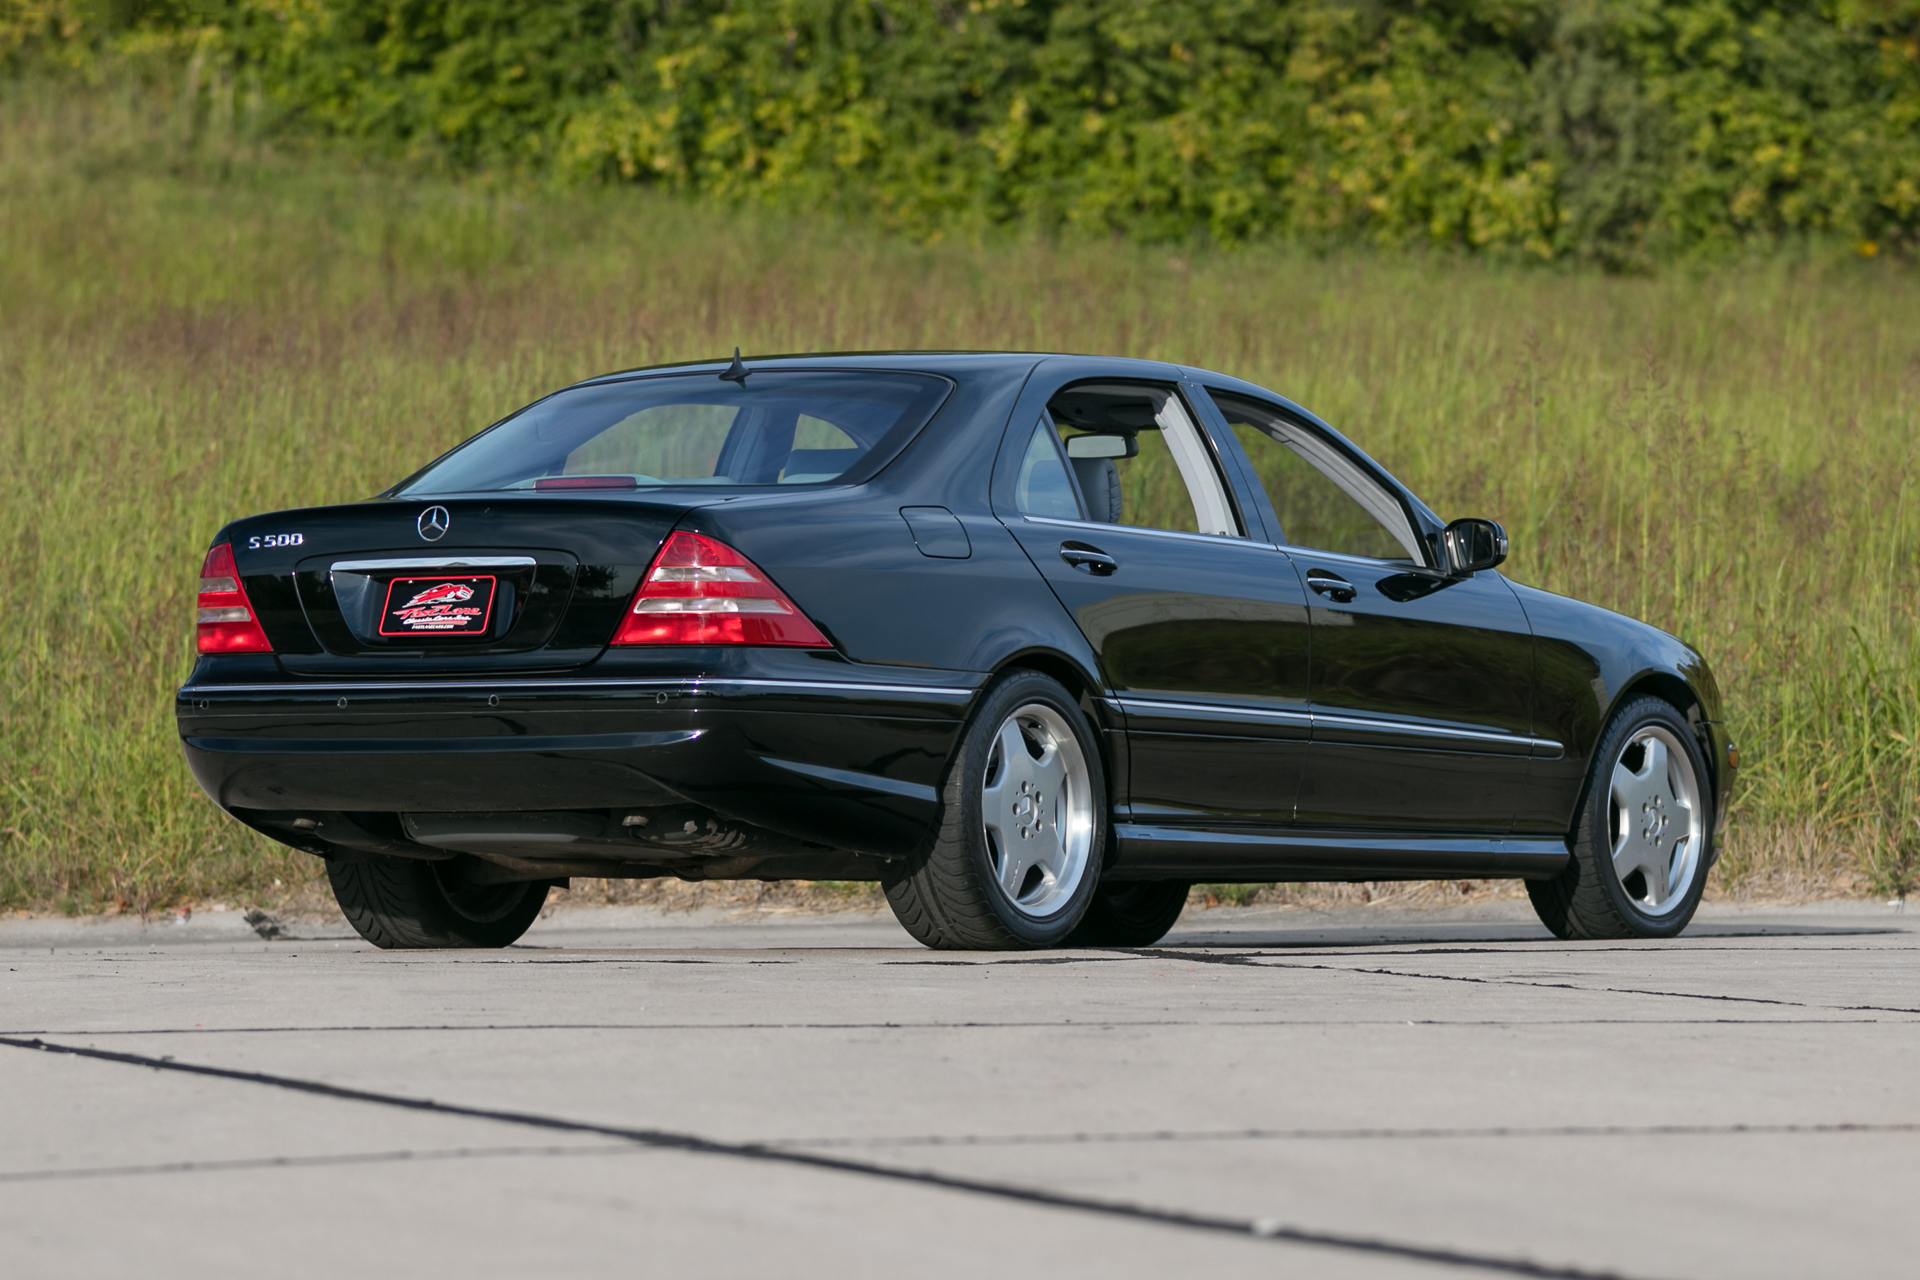 2001 mercedes benz s500 fast lane classic cars. Black Bedroom Furniture Sets. Home Design Ideas